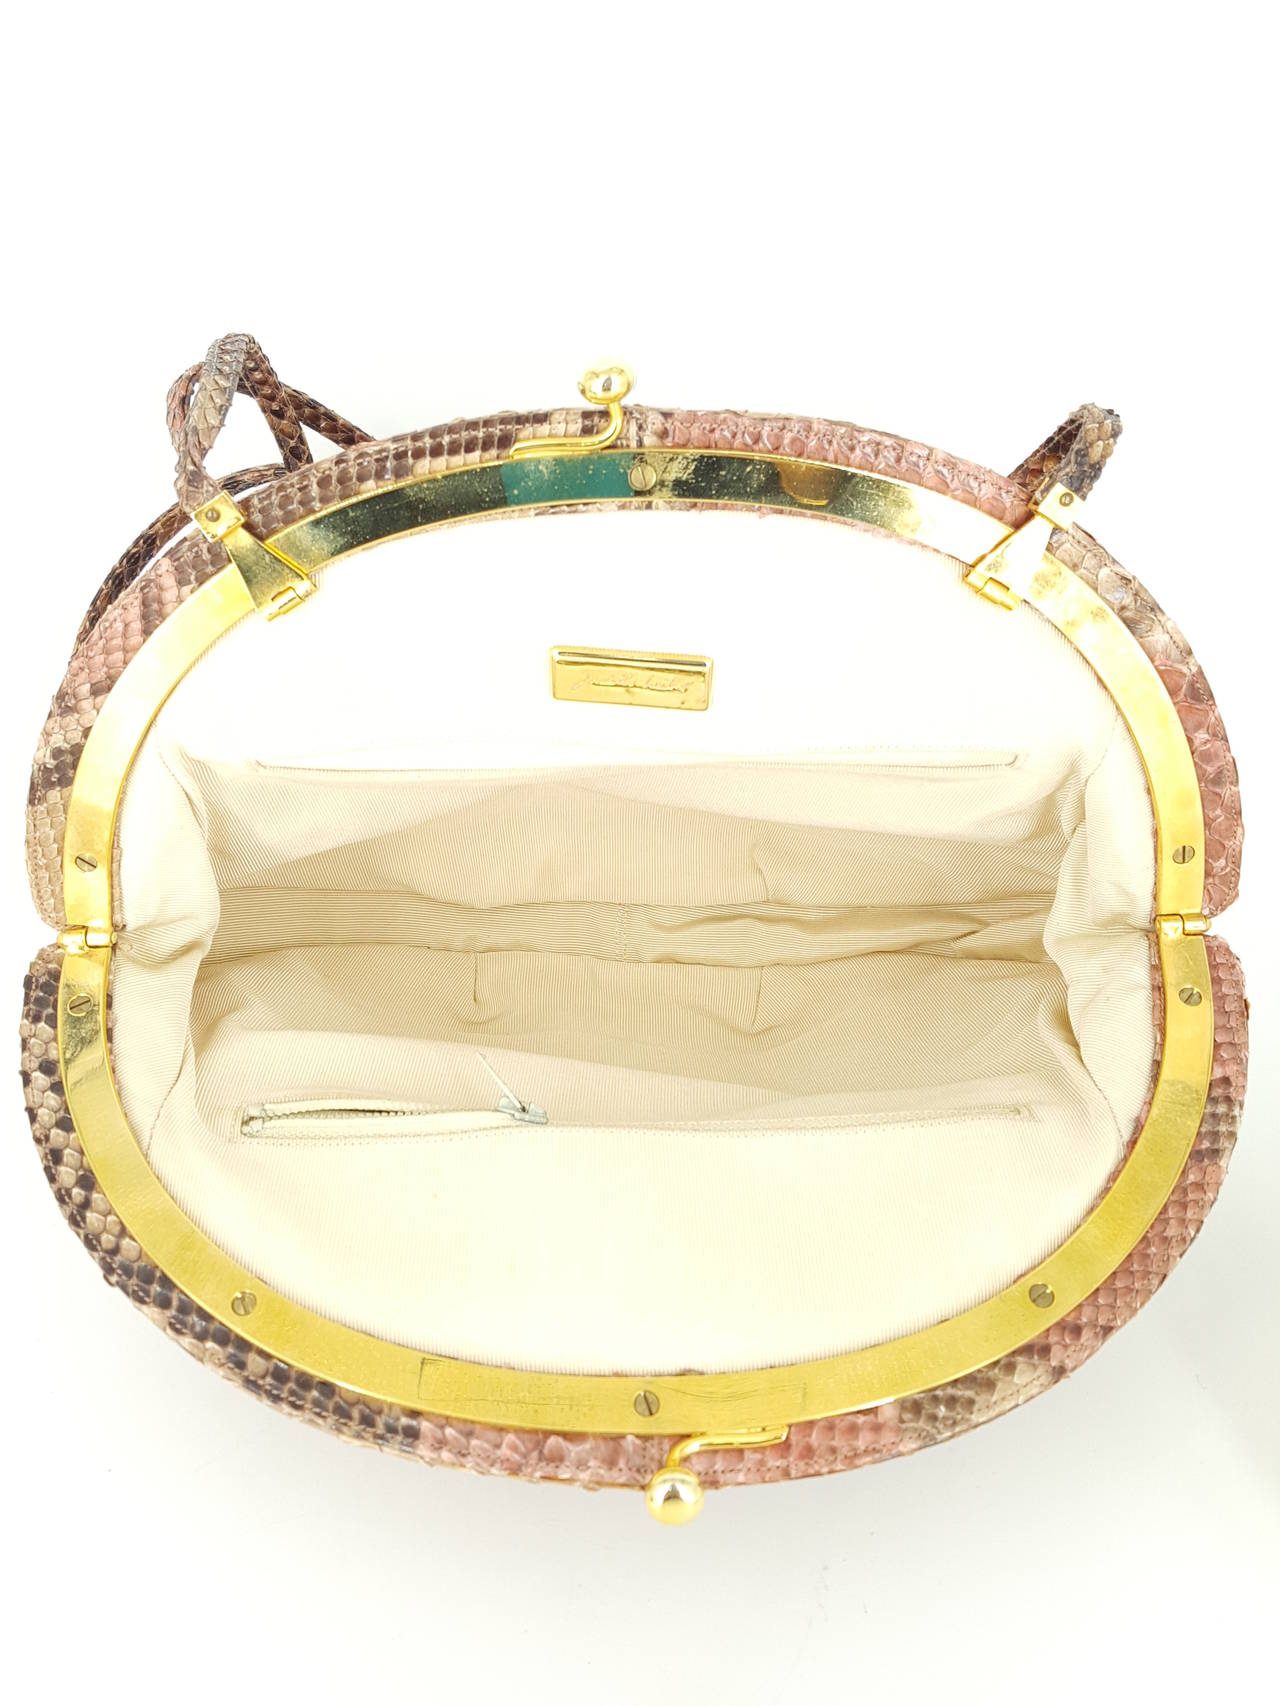 Judith Leiber Clutch/Shoulder Bag in Tan, Brown, And Pink Python In Excellent Condition For Sale In Delray Beach, FL